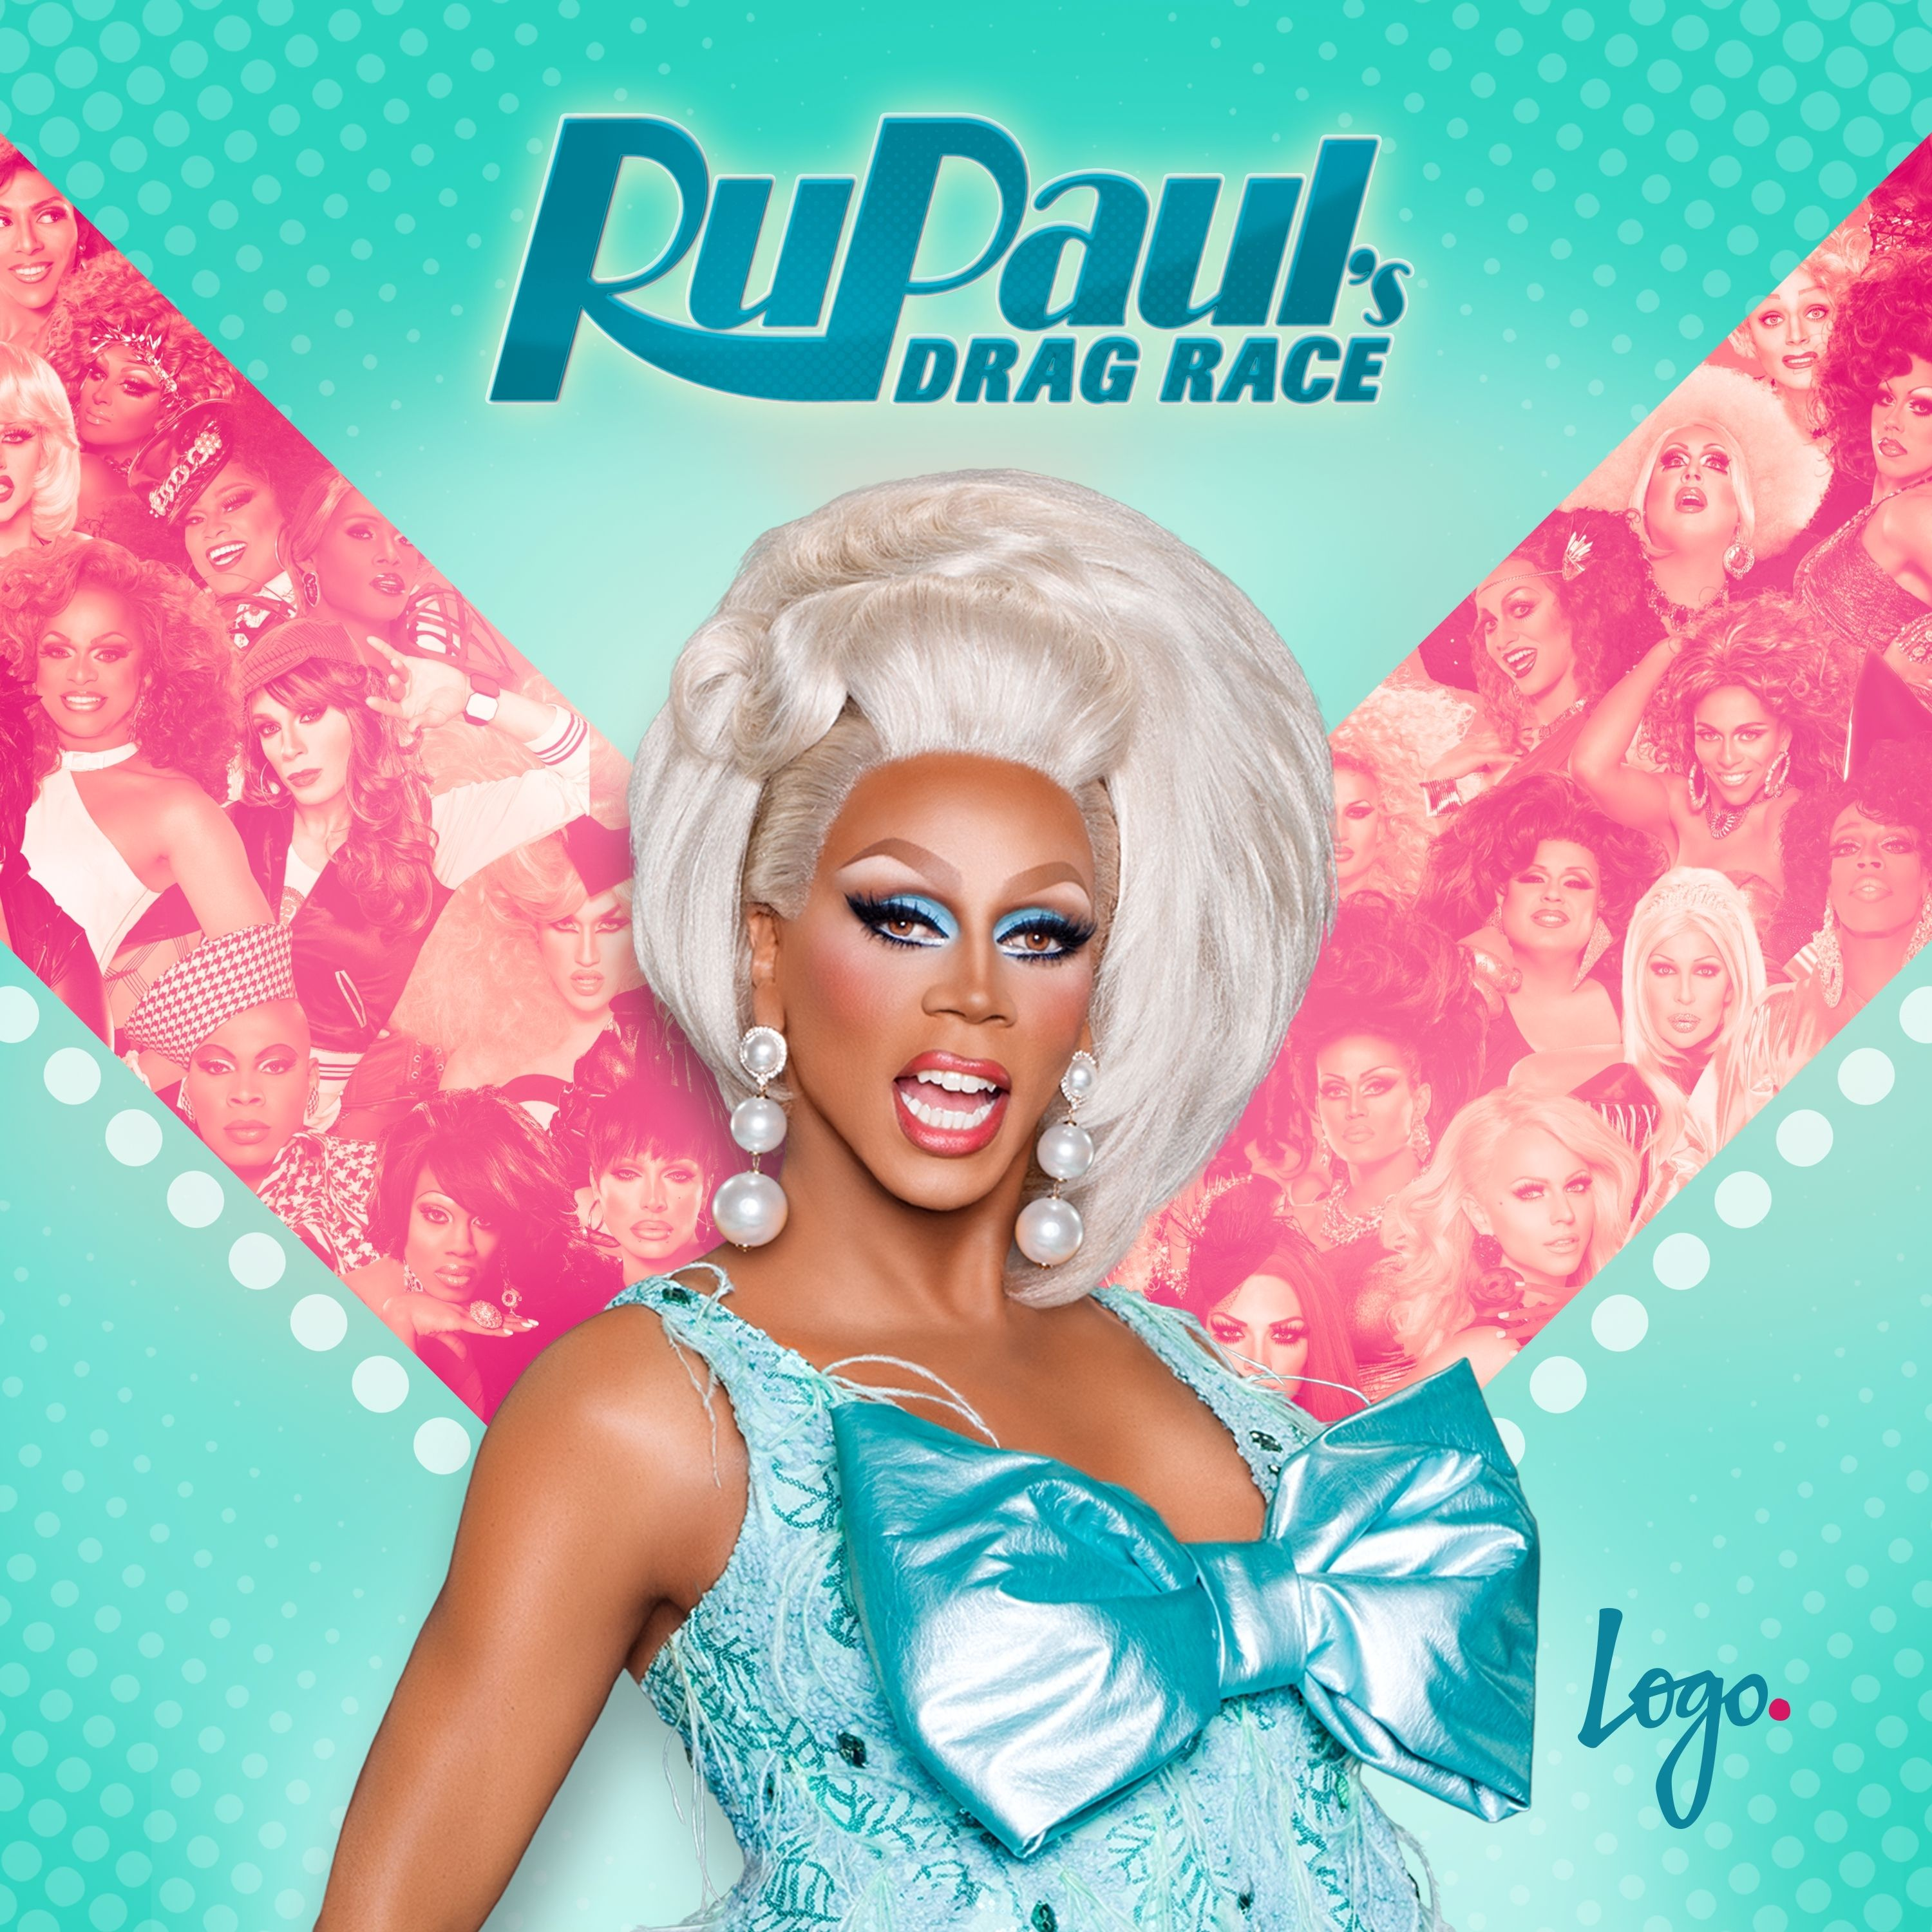 RuPaul's Drag Race (Season 8)